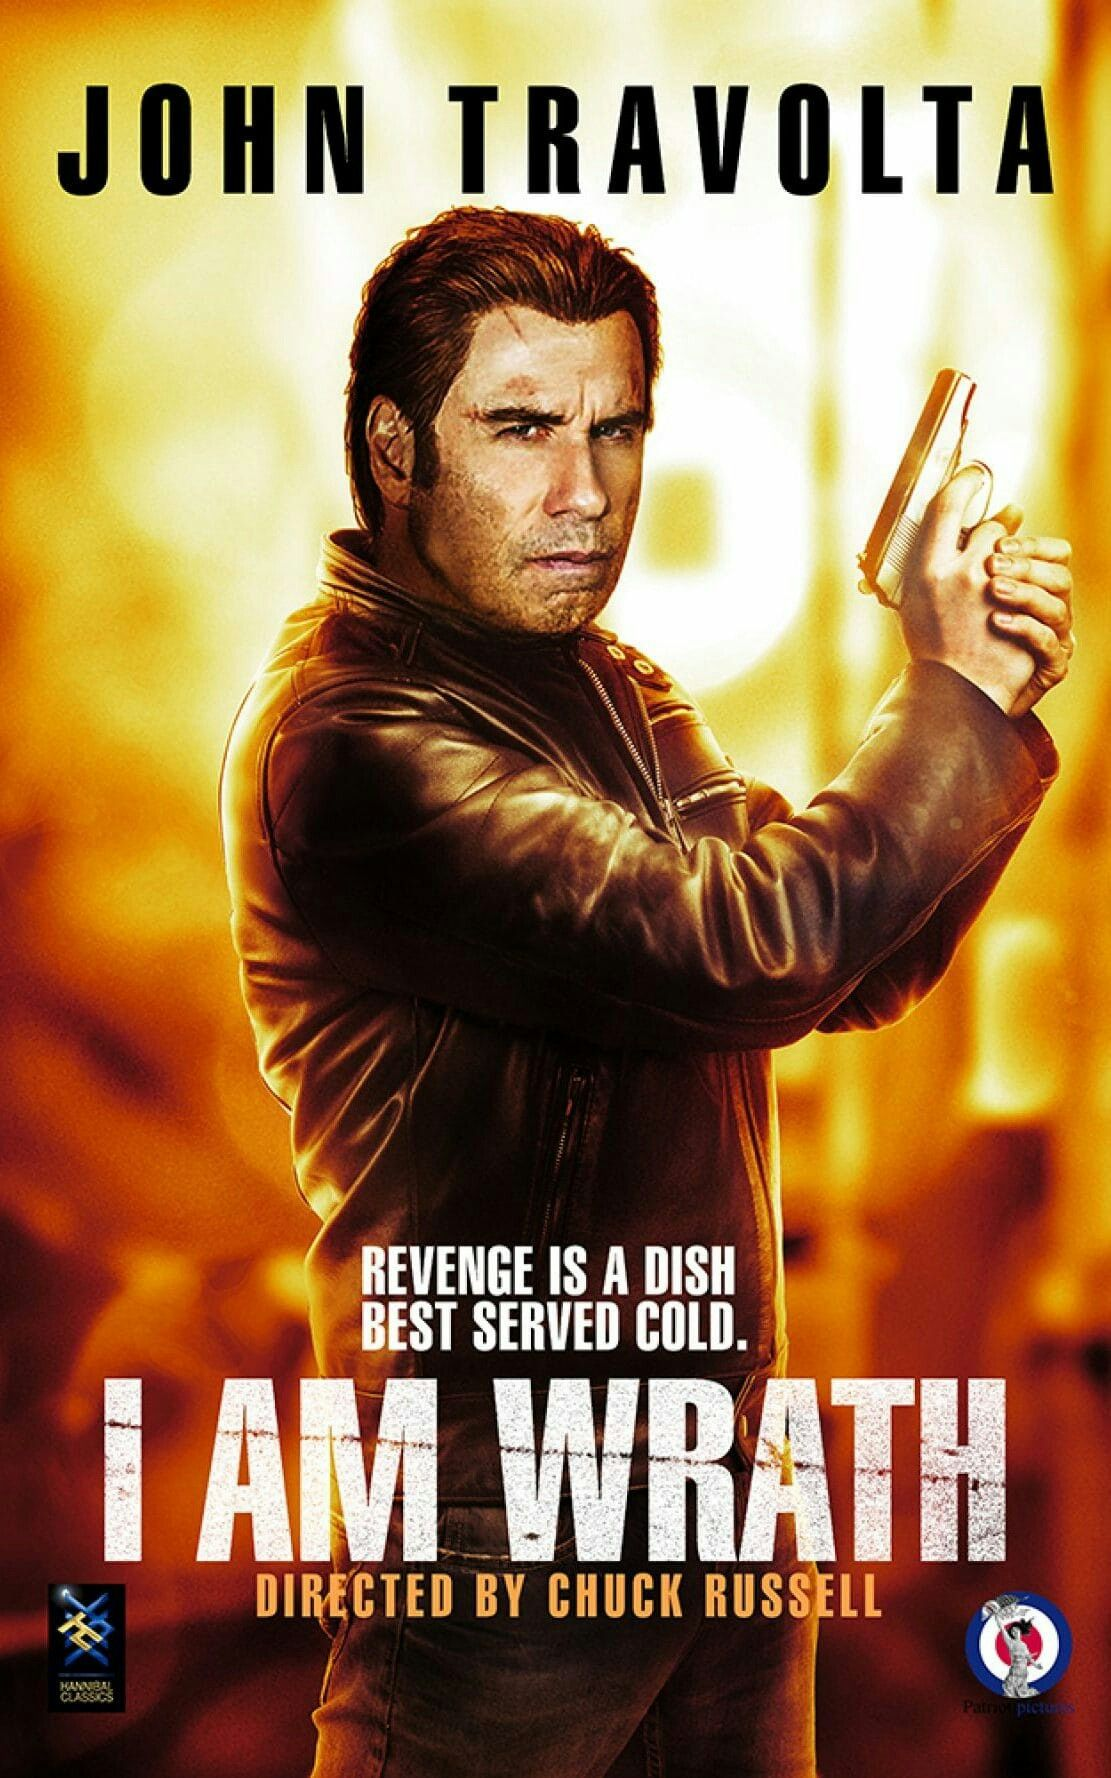 I am Wrath movie poster Fantastic Movie posters #SciFi movie posters  #Horror movie posters #Action movie posters #Drama movie posters #Fantasy  movie posters ...